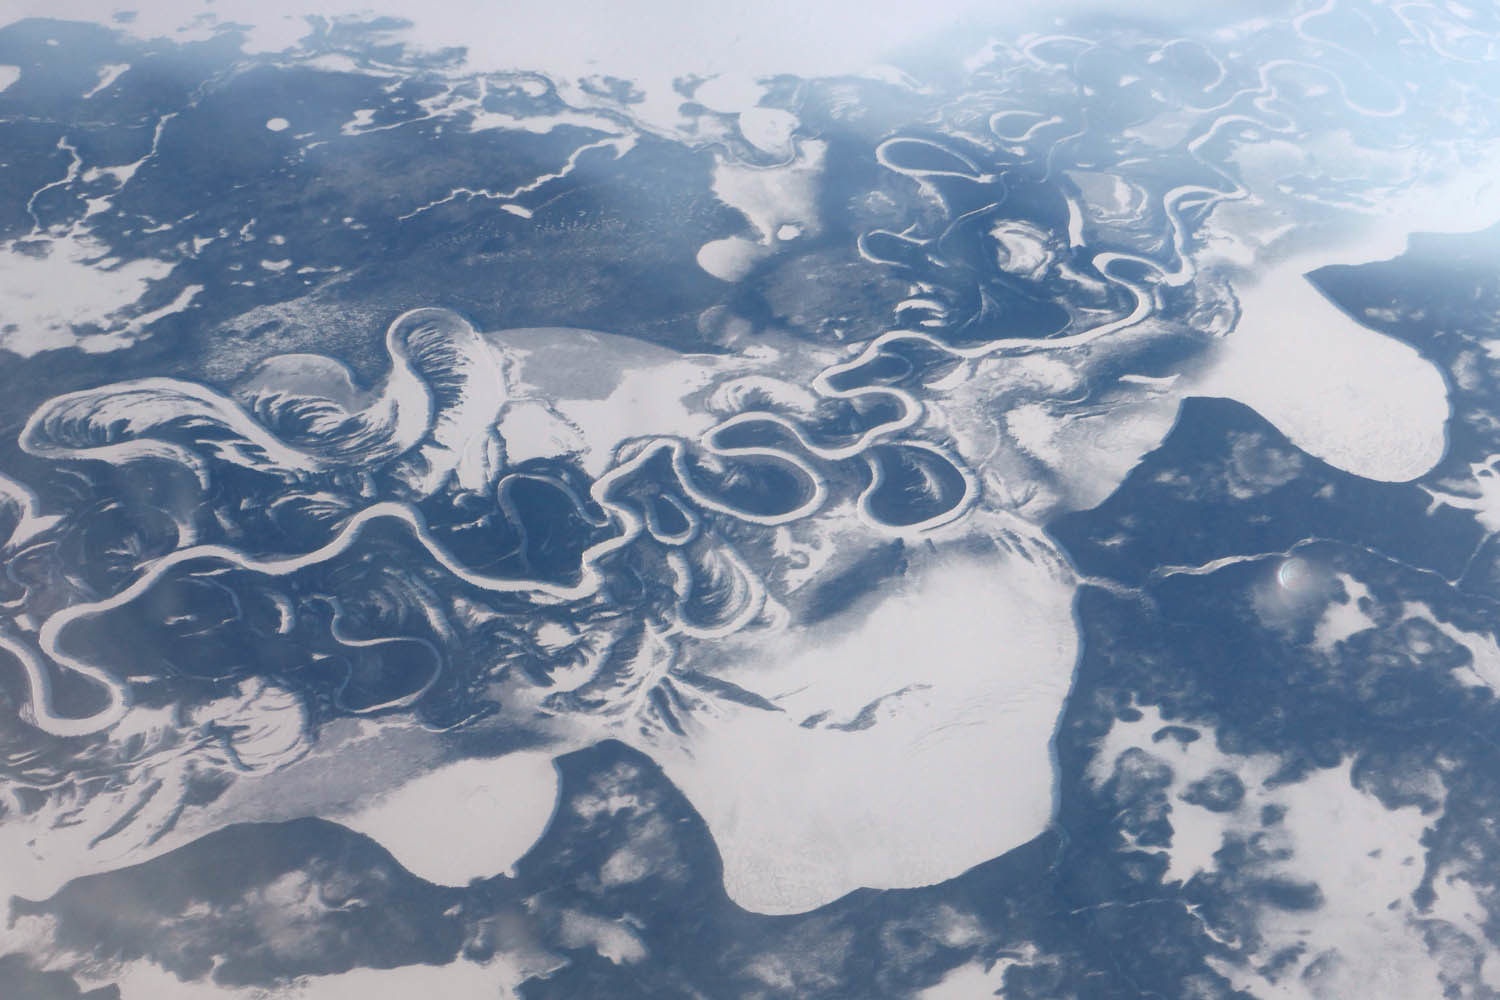 Frozen rivers meandering through forest